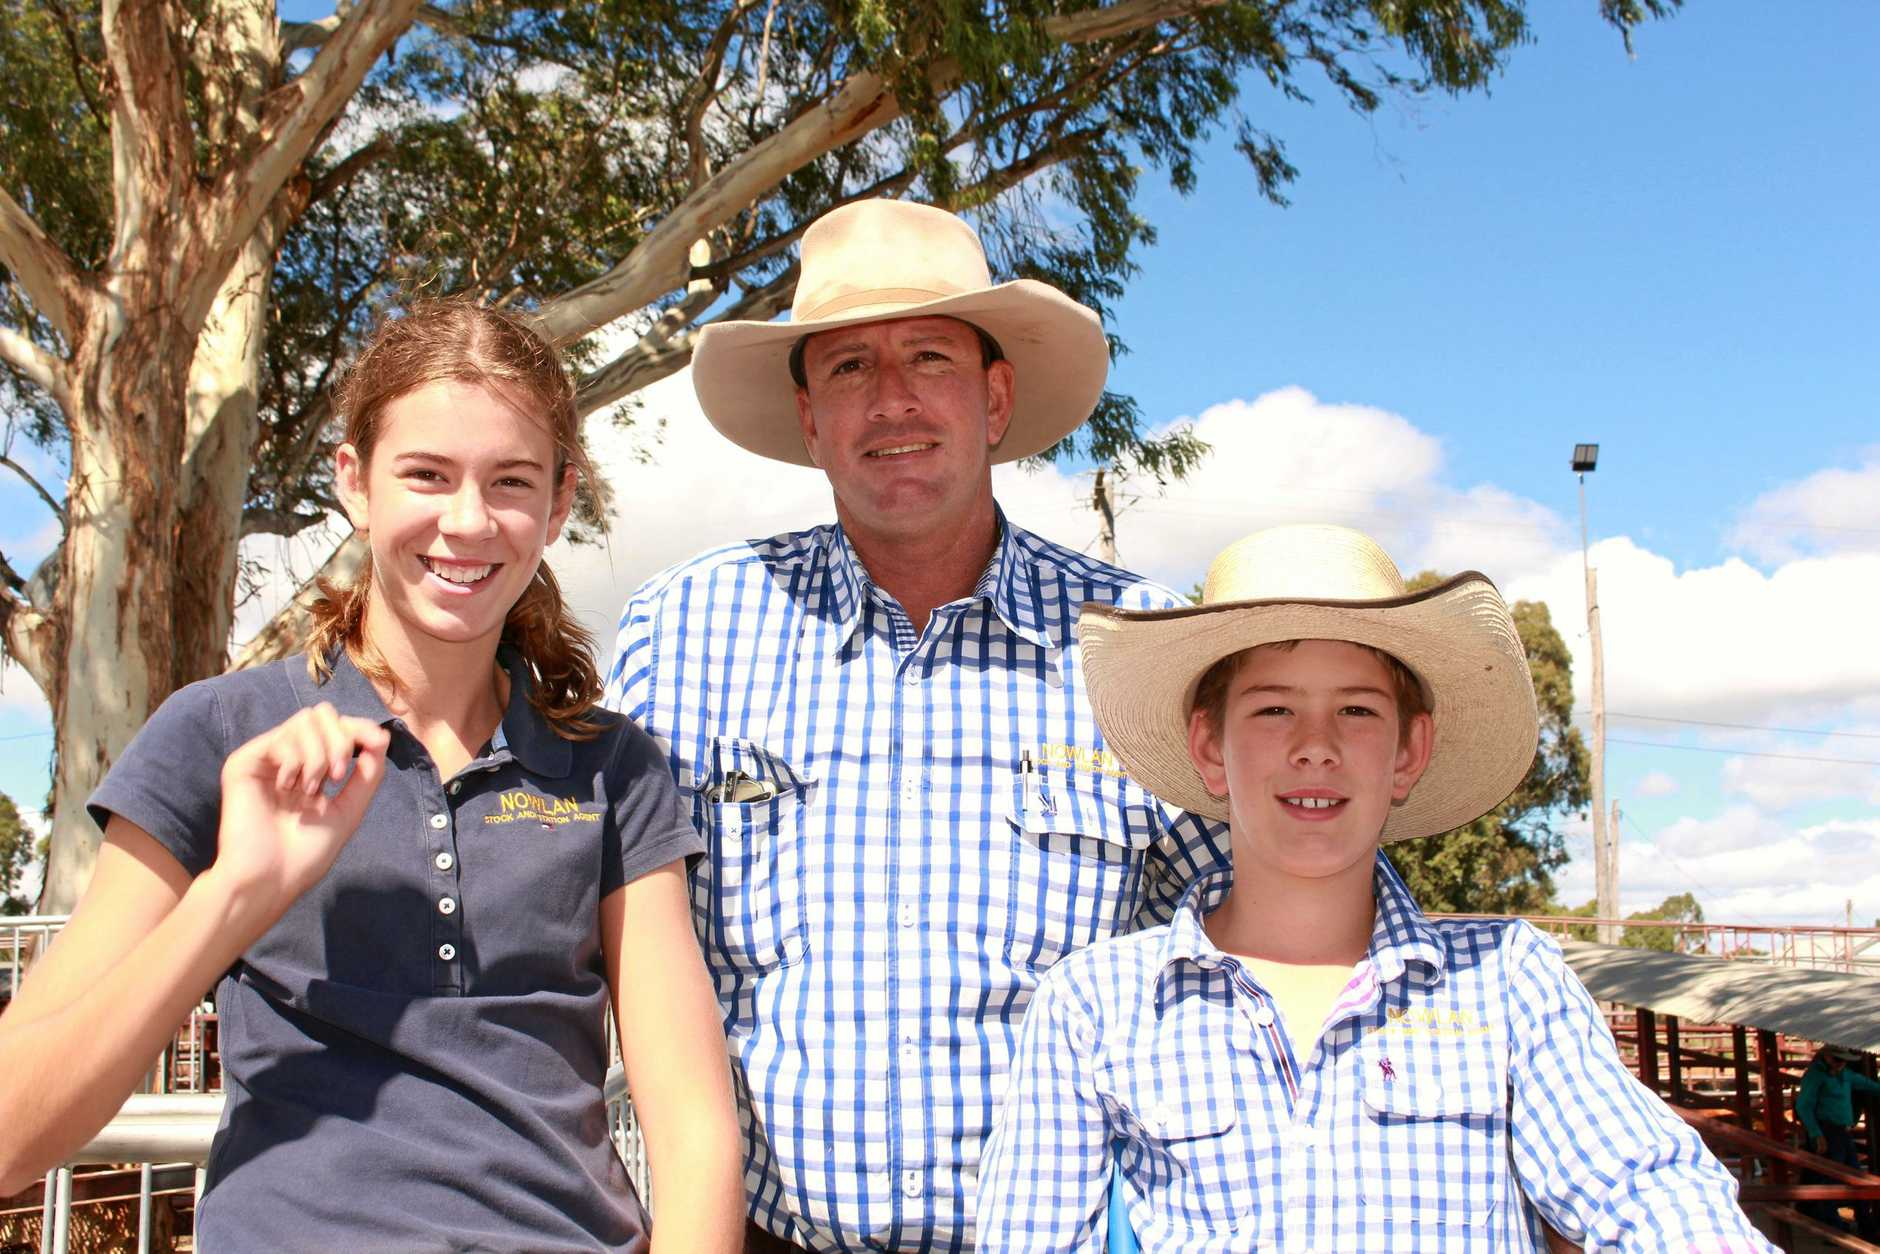 FAMILY TIME: Matilda, Michael and Innes Nowlan have been working hard to prepare for the annual weaner sale and were glad to see success with 480 head of cattle sold to new homes.